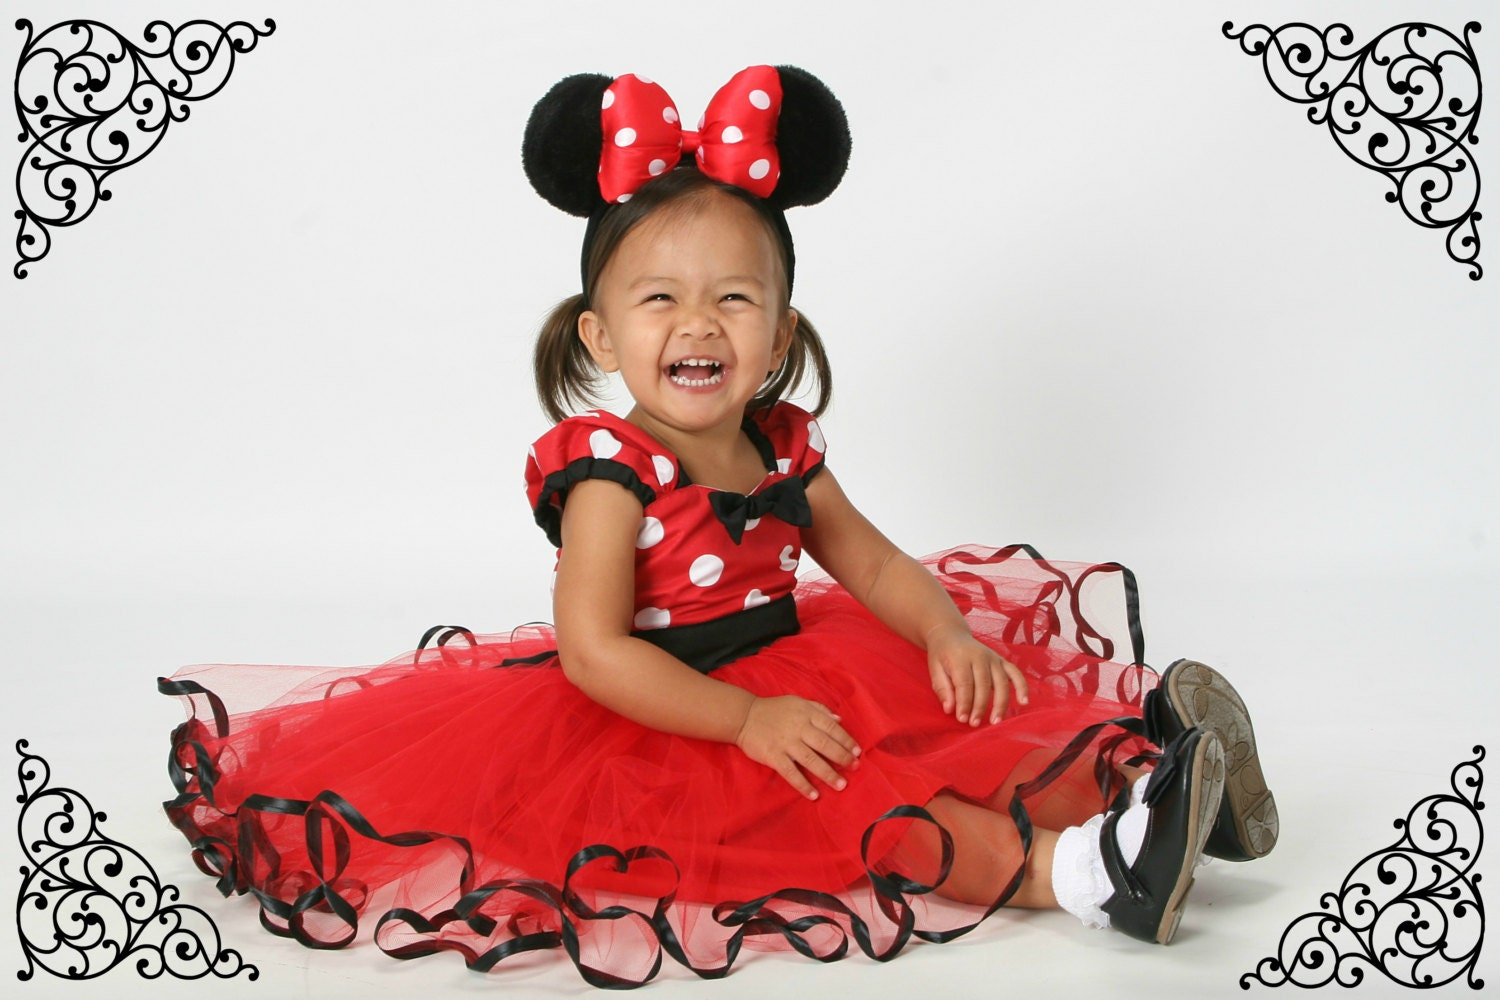 Imikimi Nederlandstalig Awesome red minnie mouse dress with tutu party dress in red polka